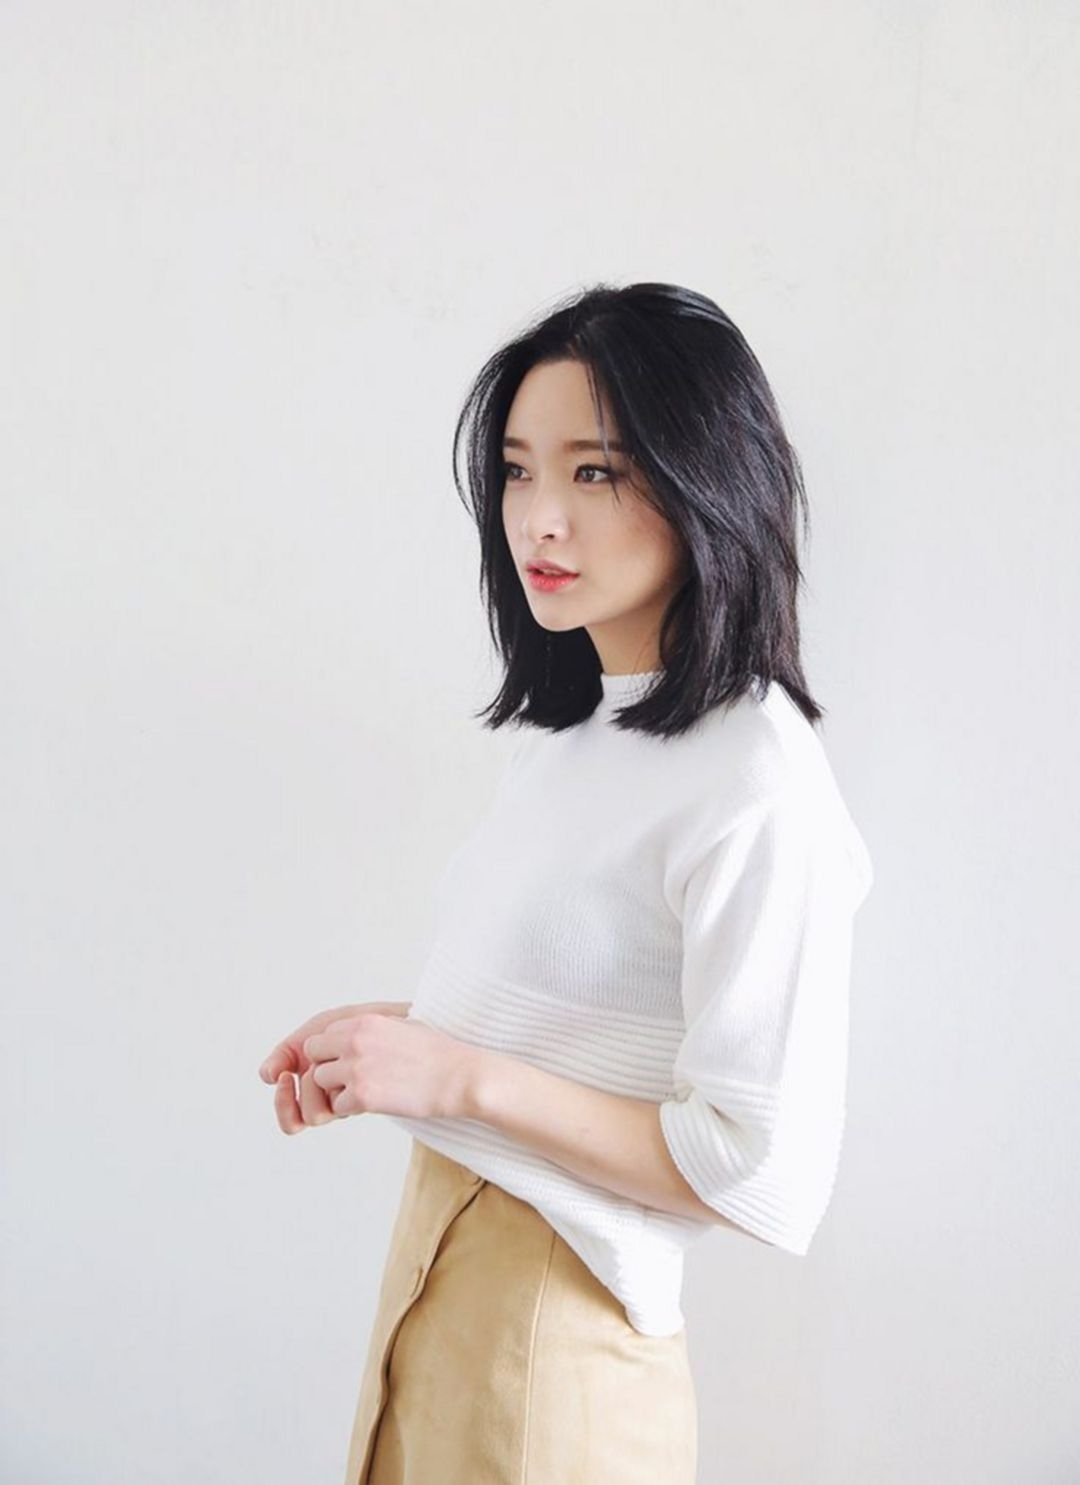 Pin By Becky Kwan On Haircut In 2019 | Korean Short Hair, Hair Cuts for Asian Hairstyles Short Hair